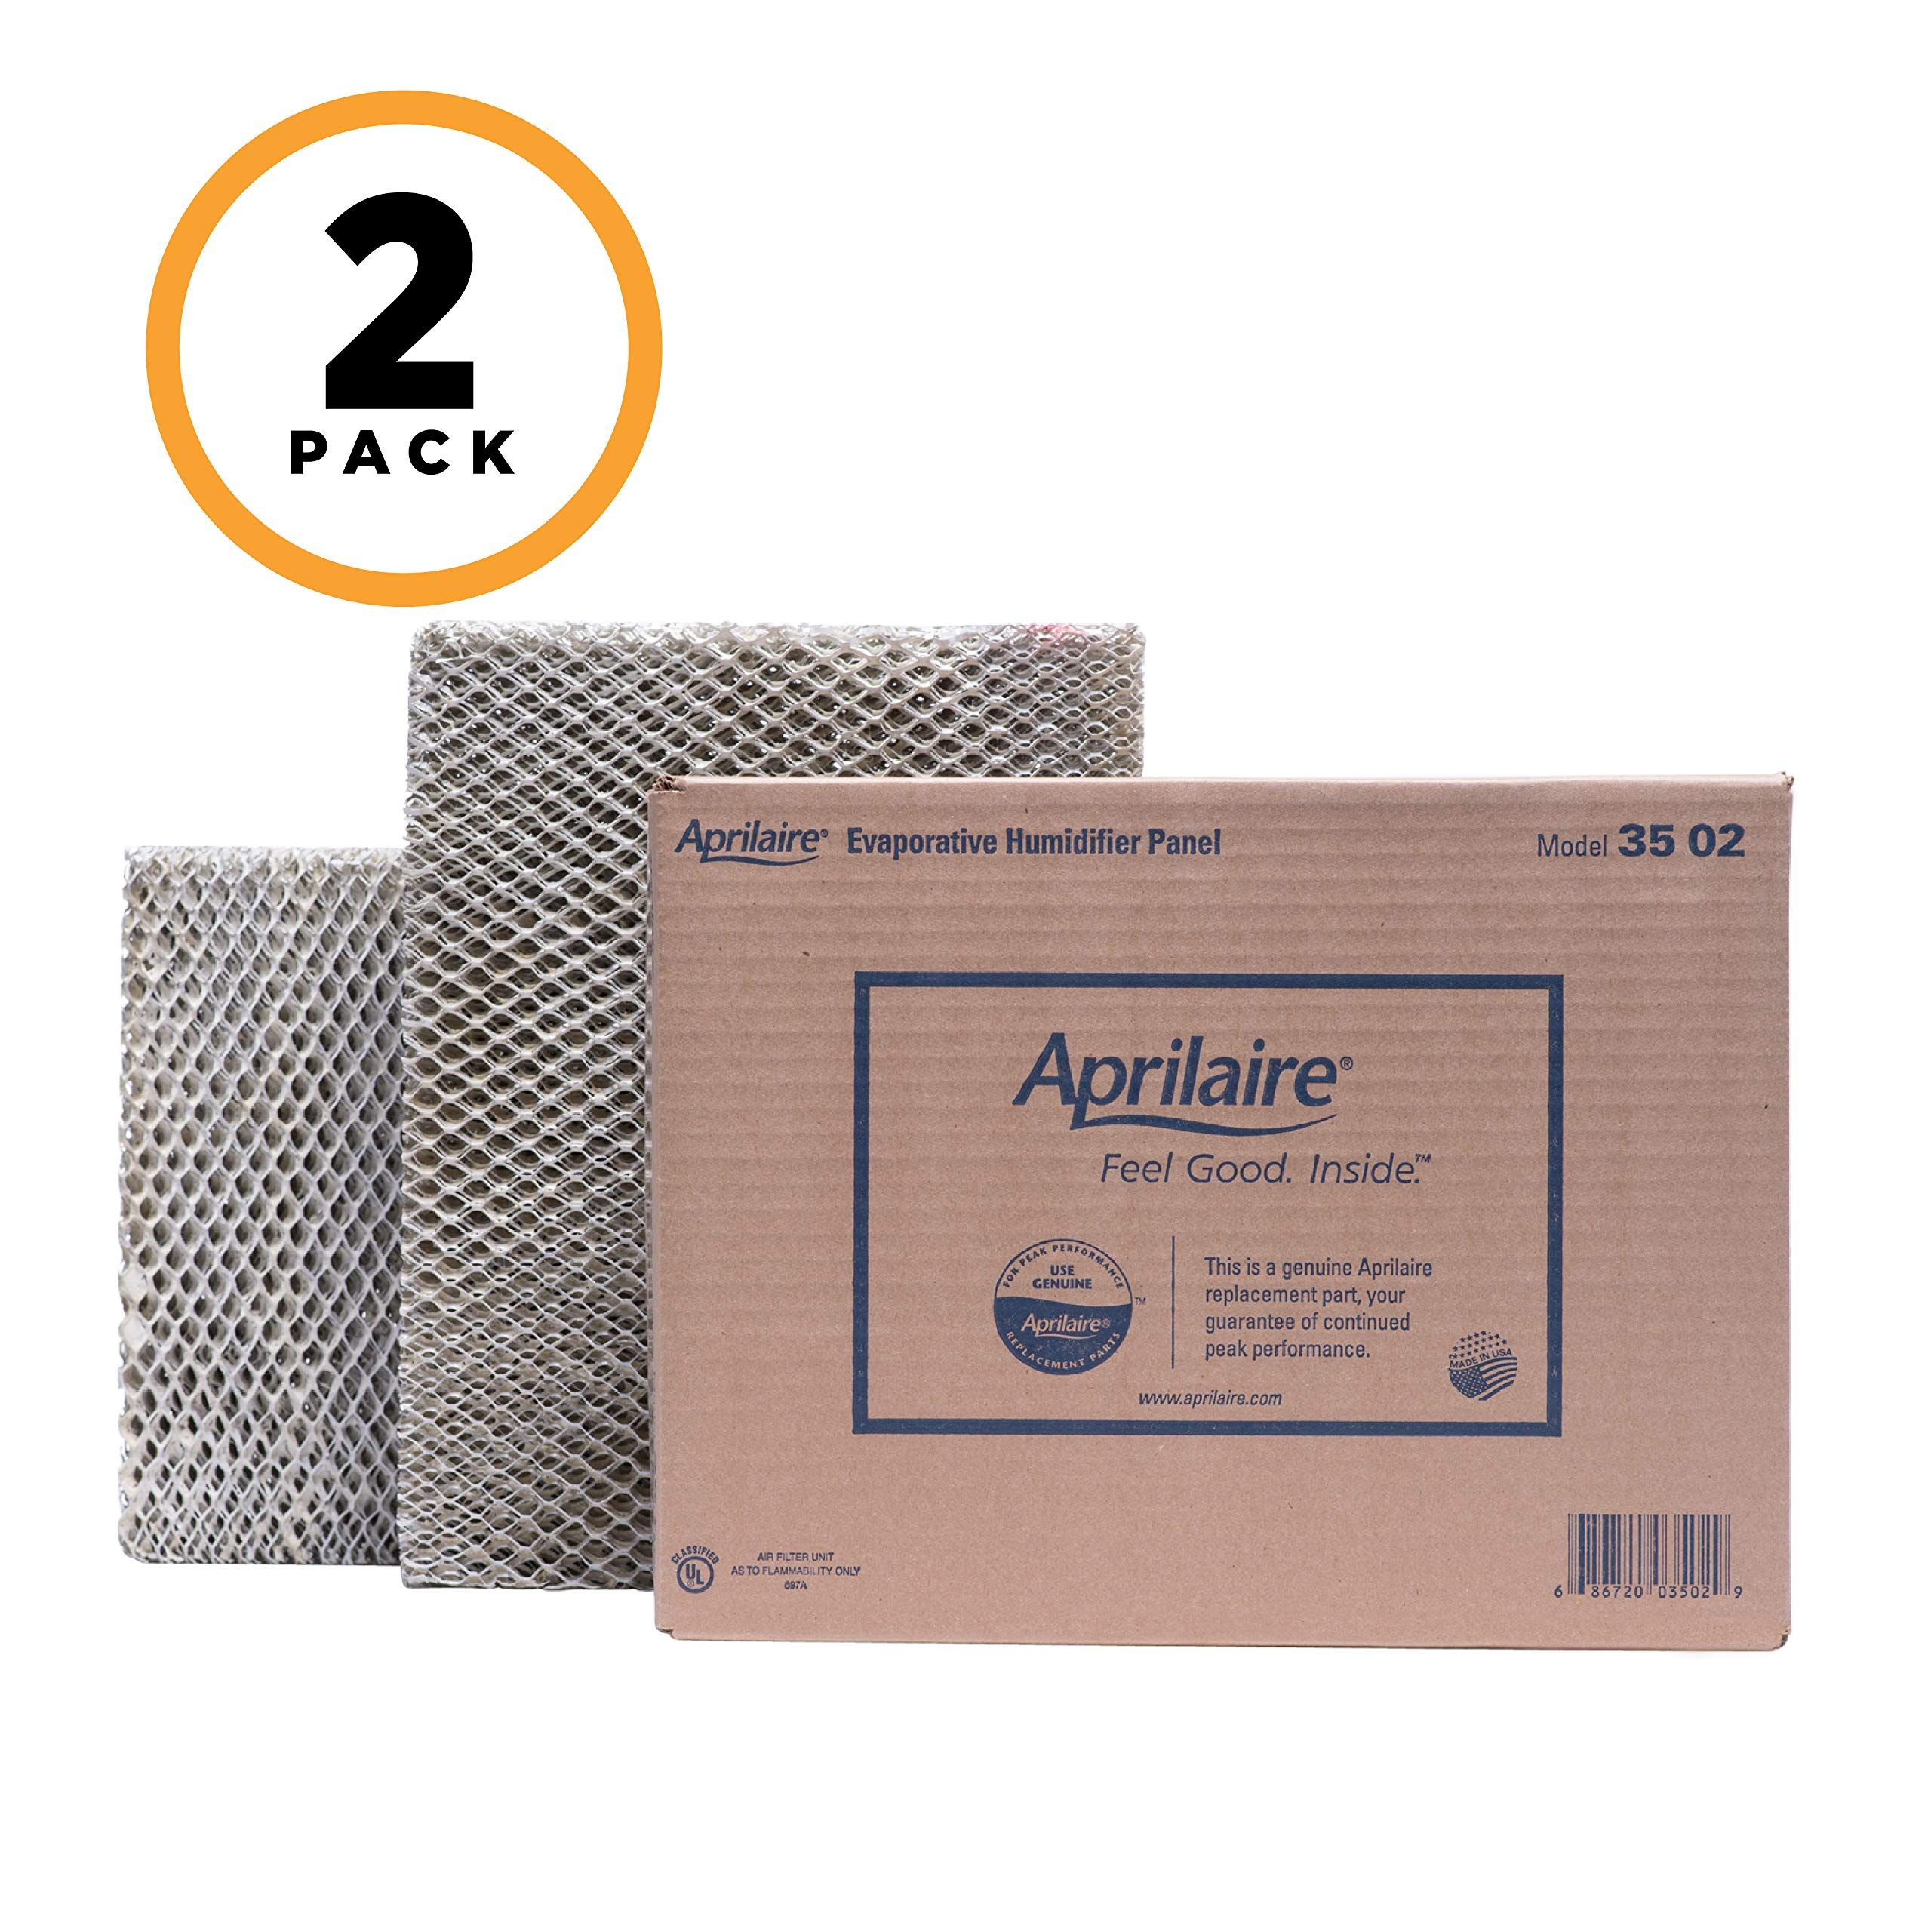 Aprilaire 35 Replacement Water P | Humidifier, Humidifier